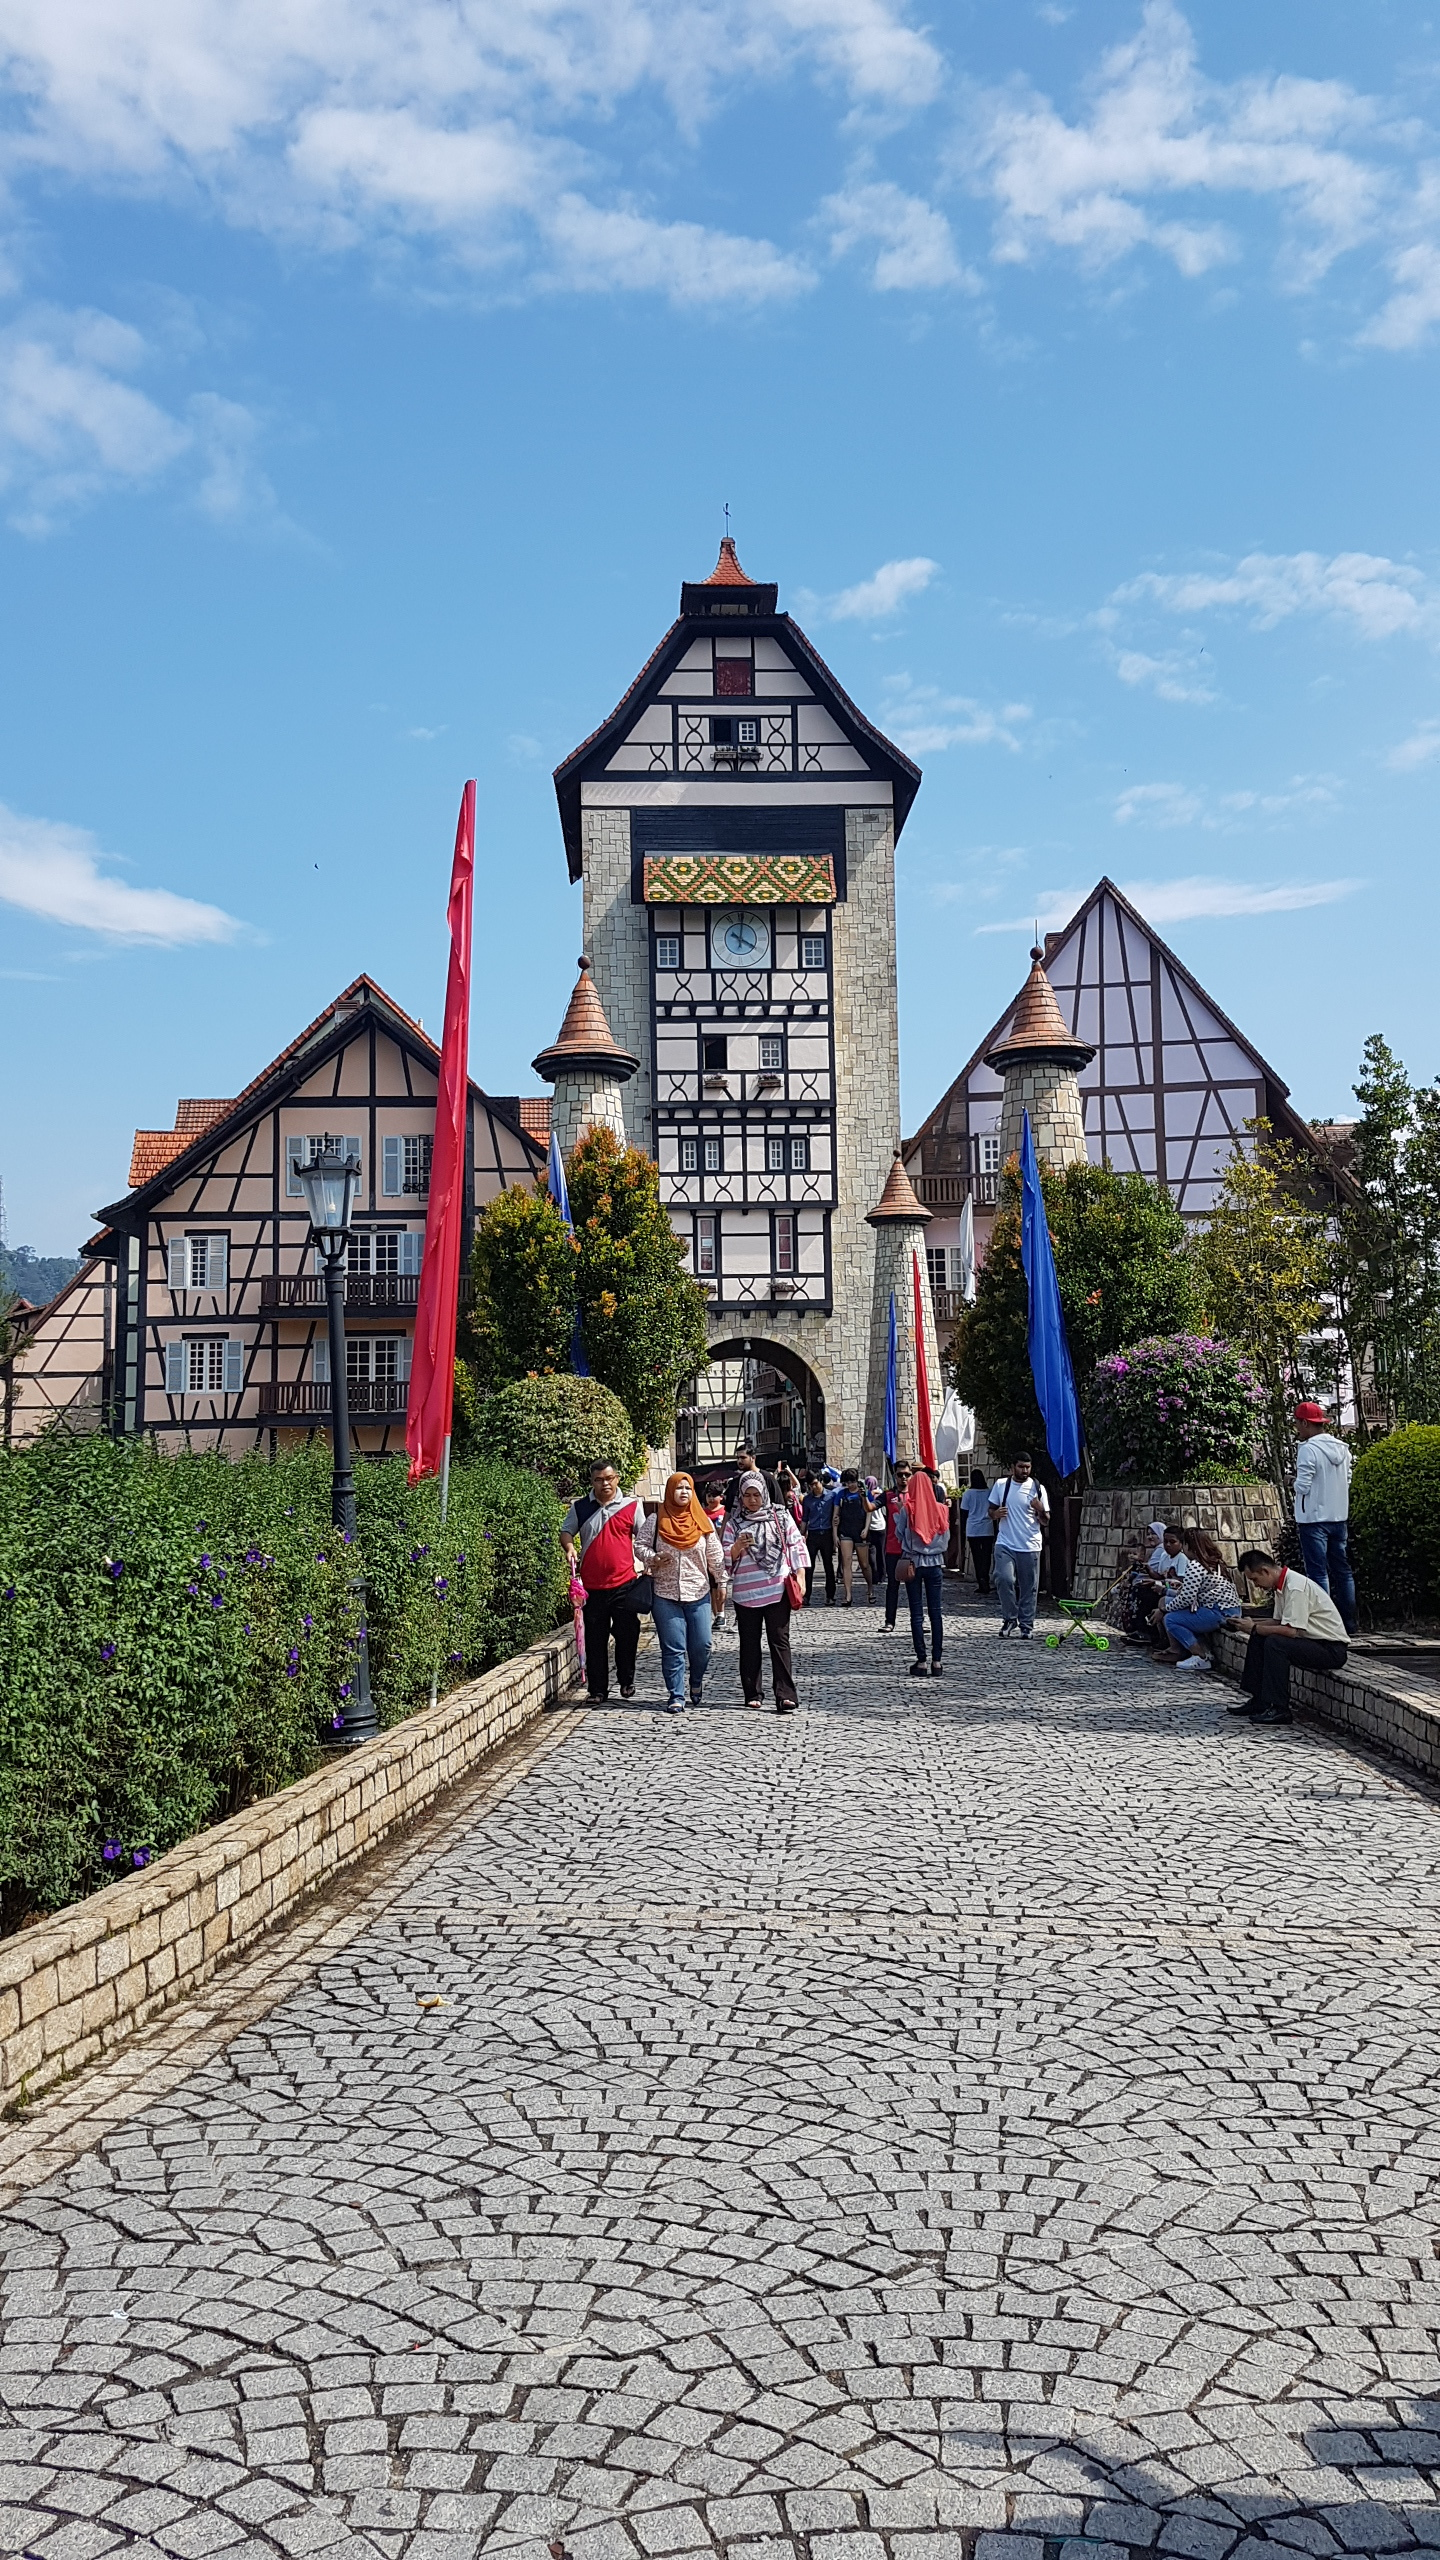 French Themed Village, Colmar Tropicale in Berjaya Hills